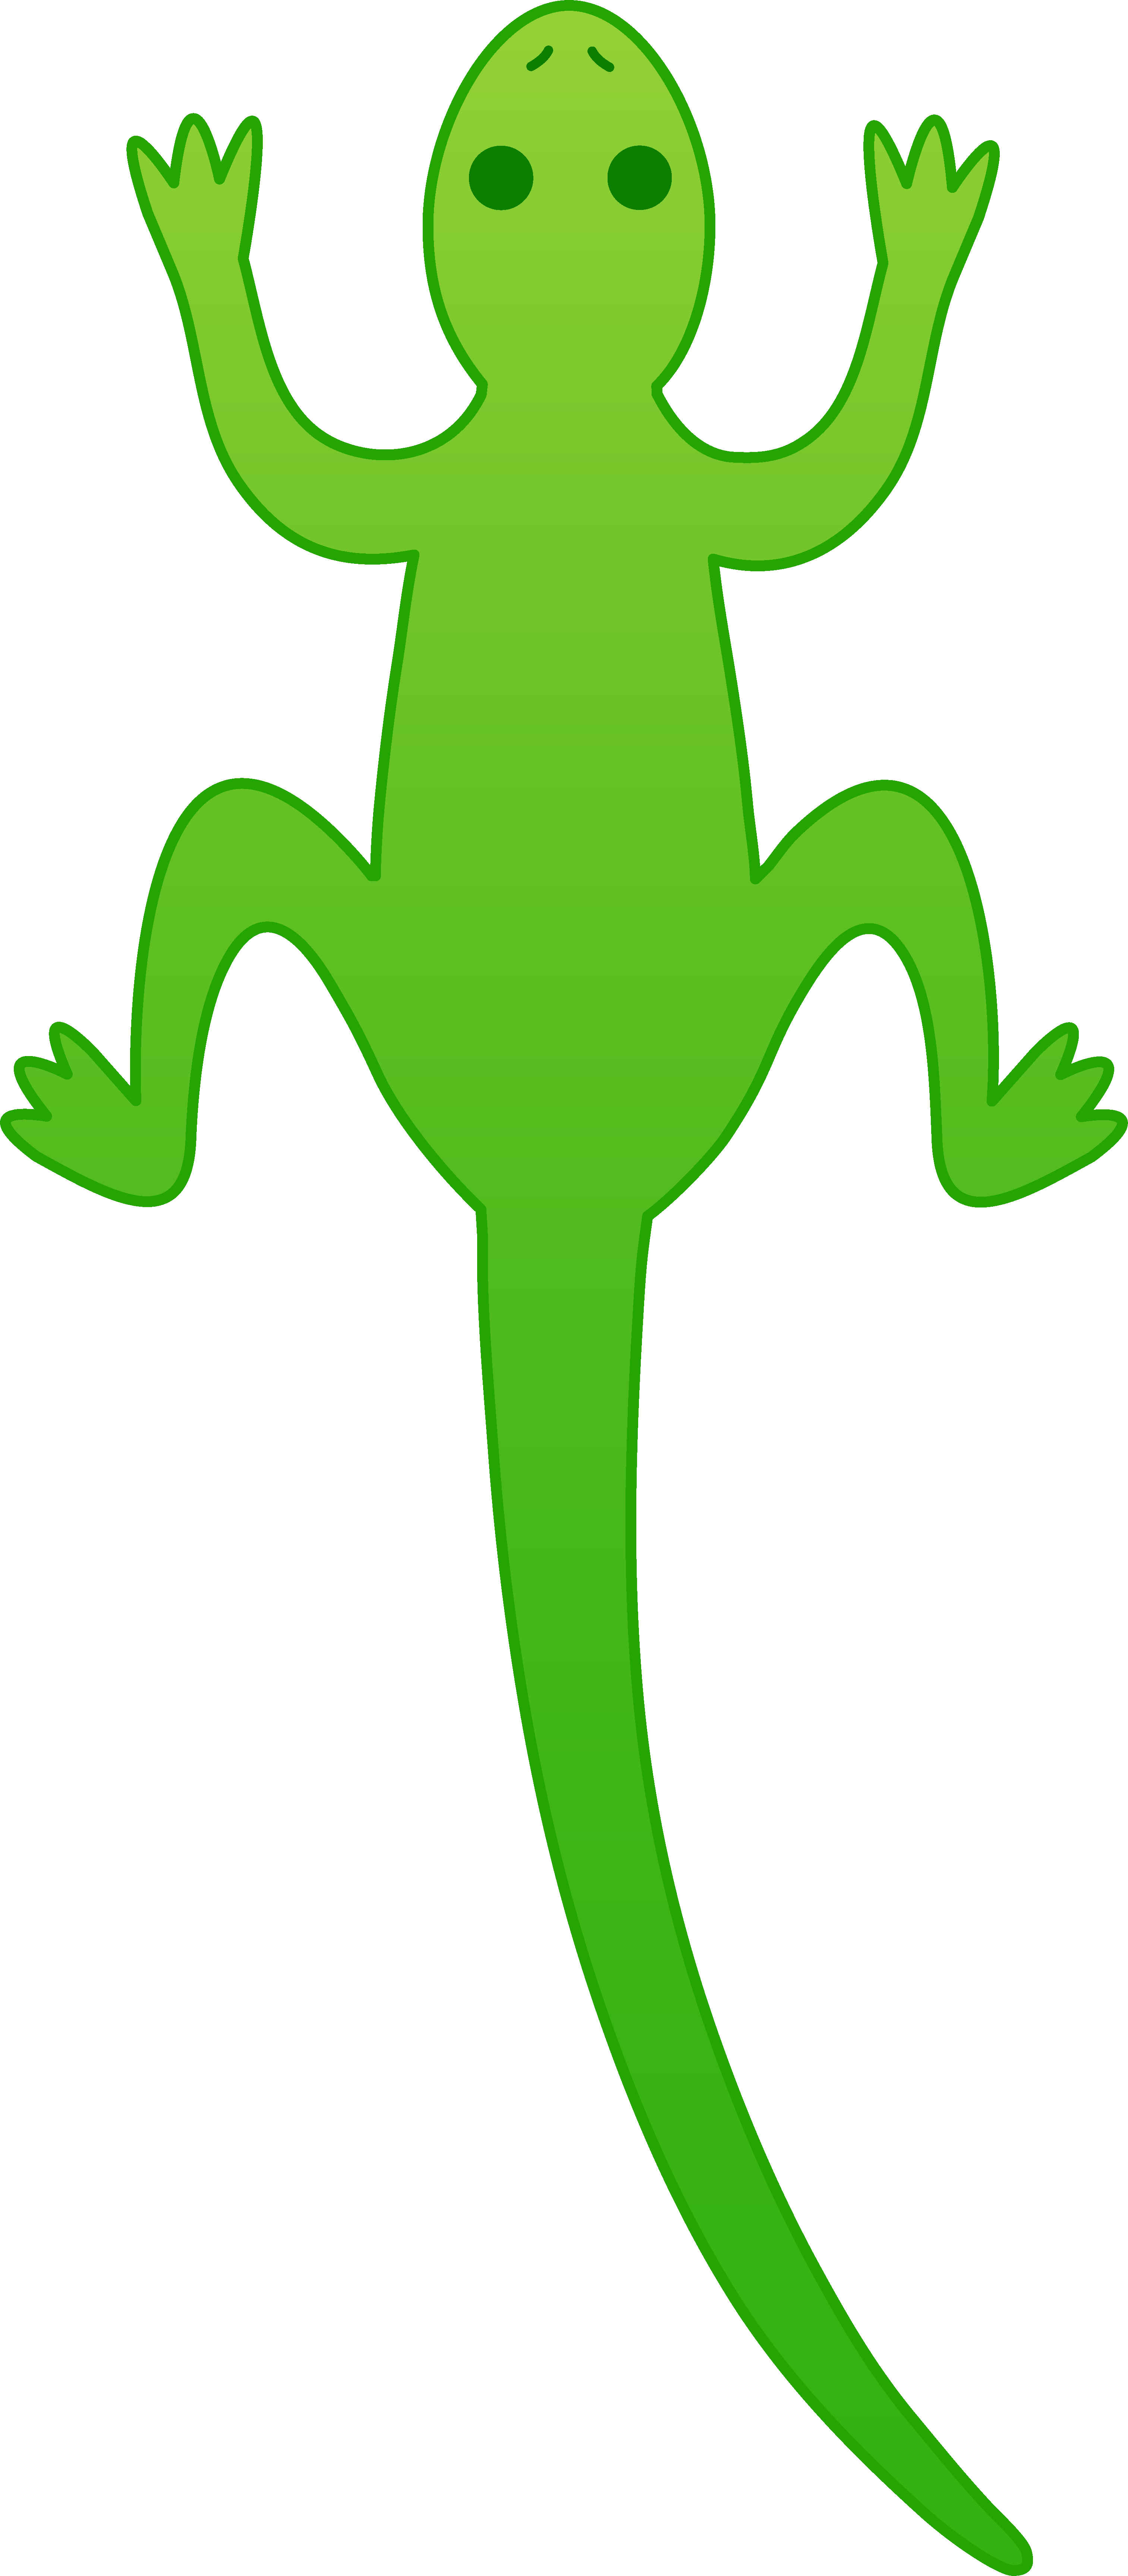 Drawn reptile yellow spotted Clipart lizard%20clipart Cute Lizard Free